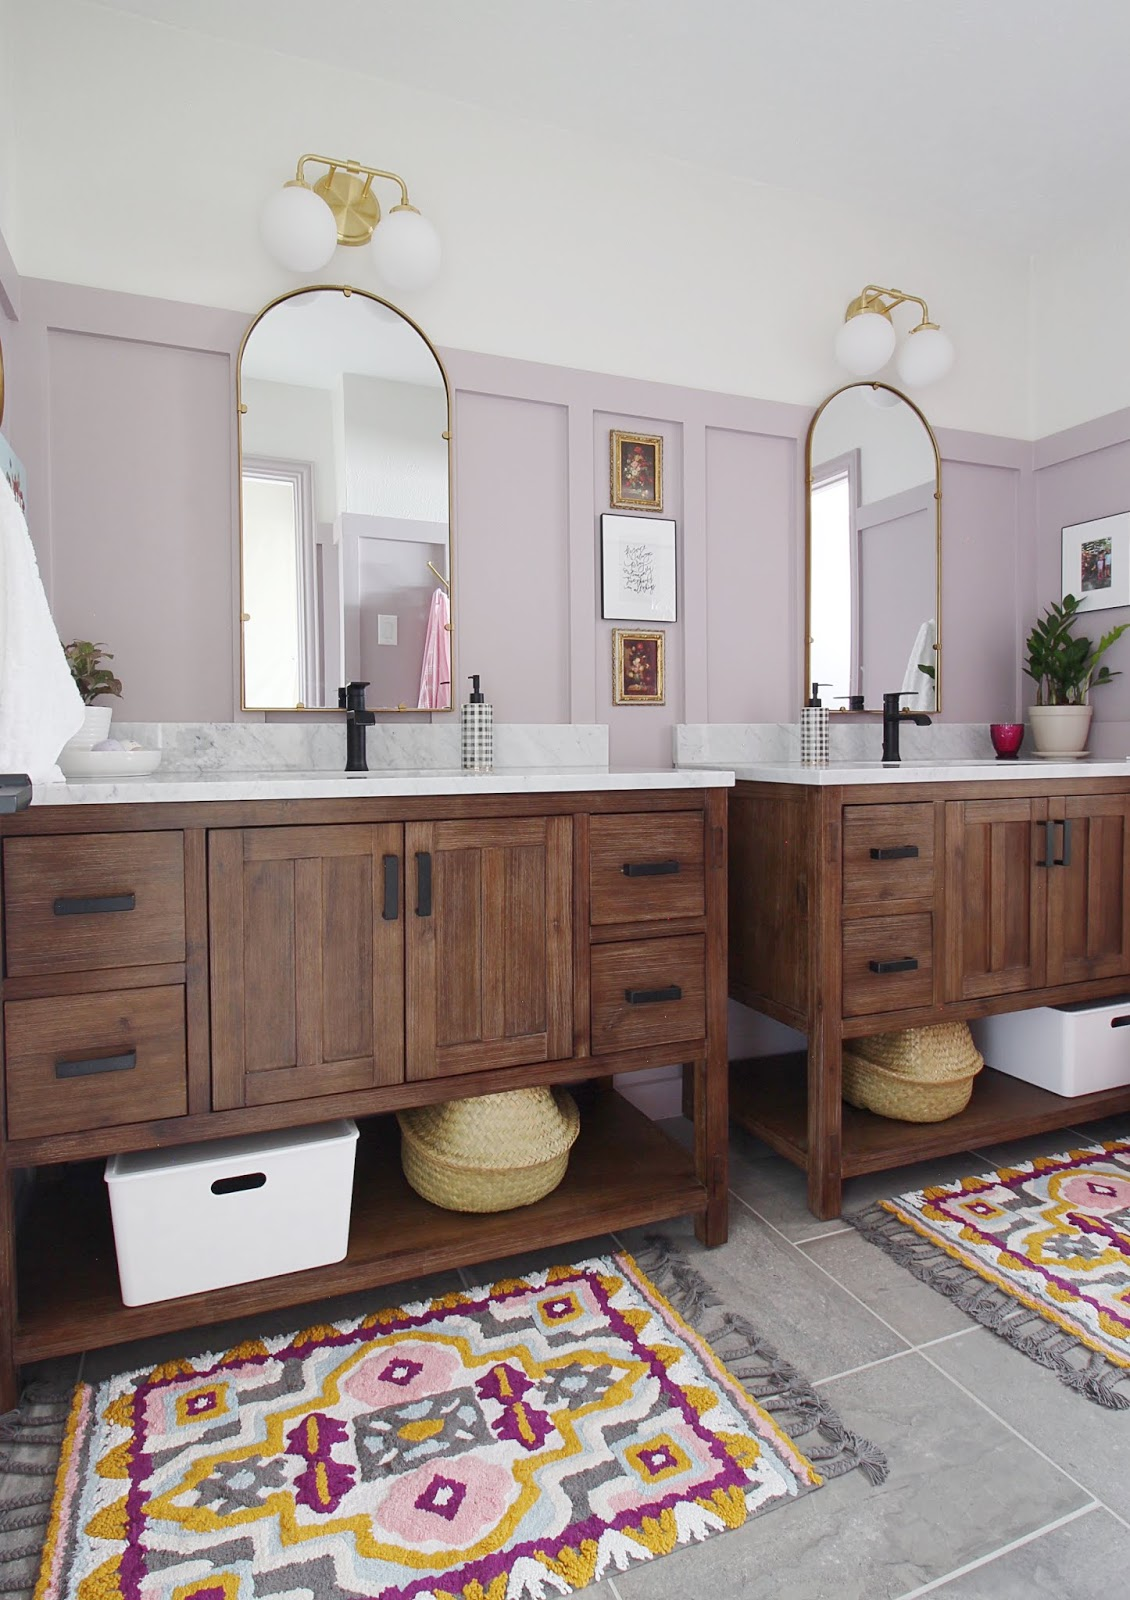 Side by side vanities, arched mirrors, brass and black fixtures, anthropologie bathmat rugs, basket weave floor tiles.